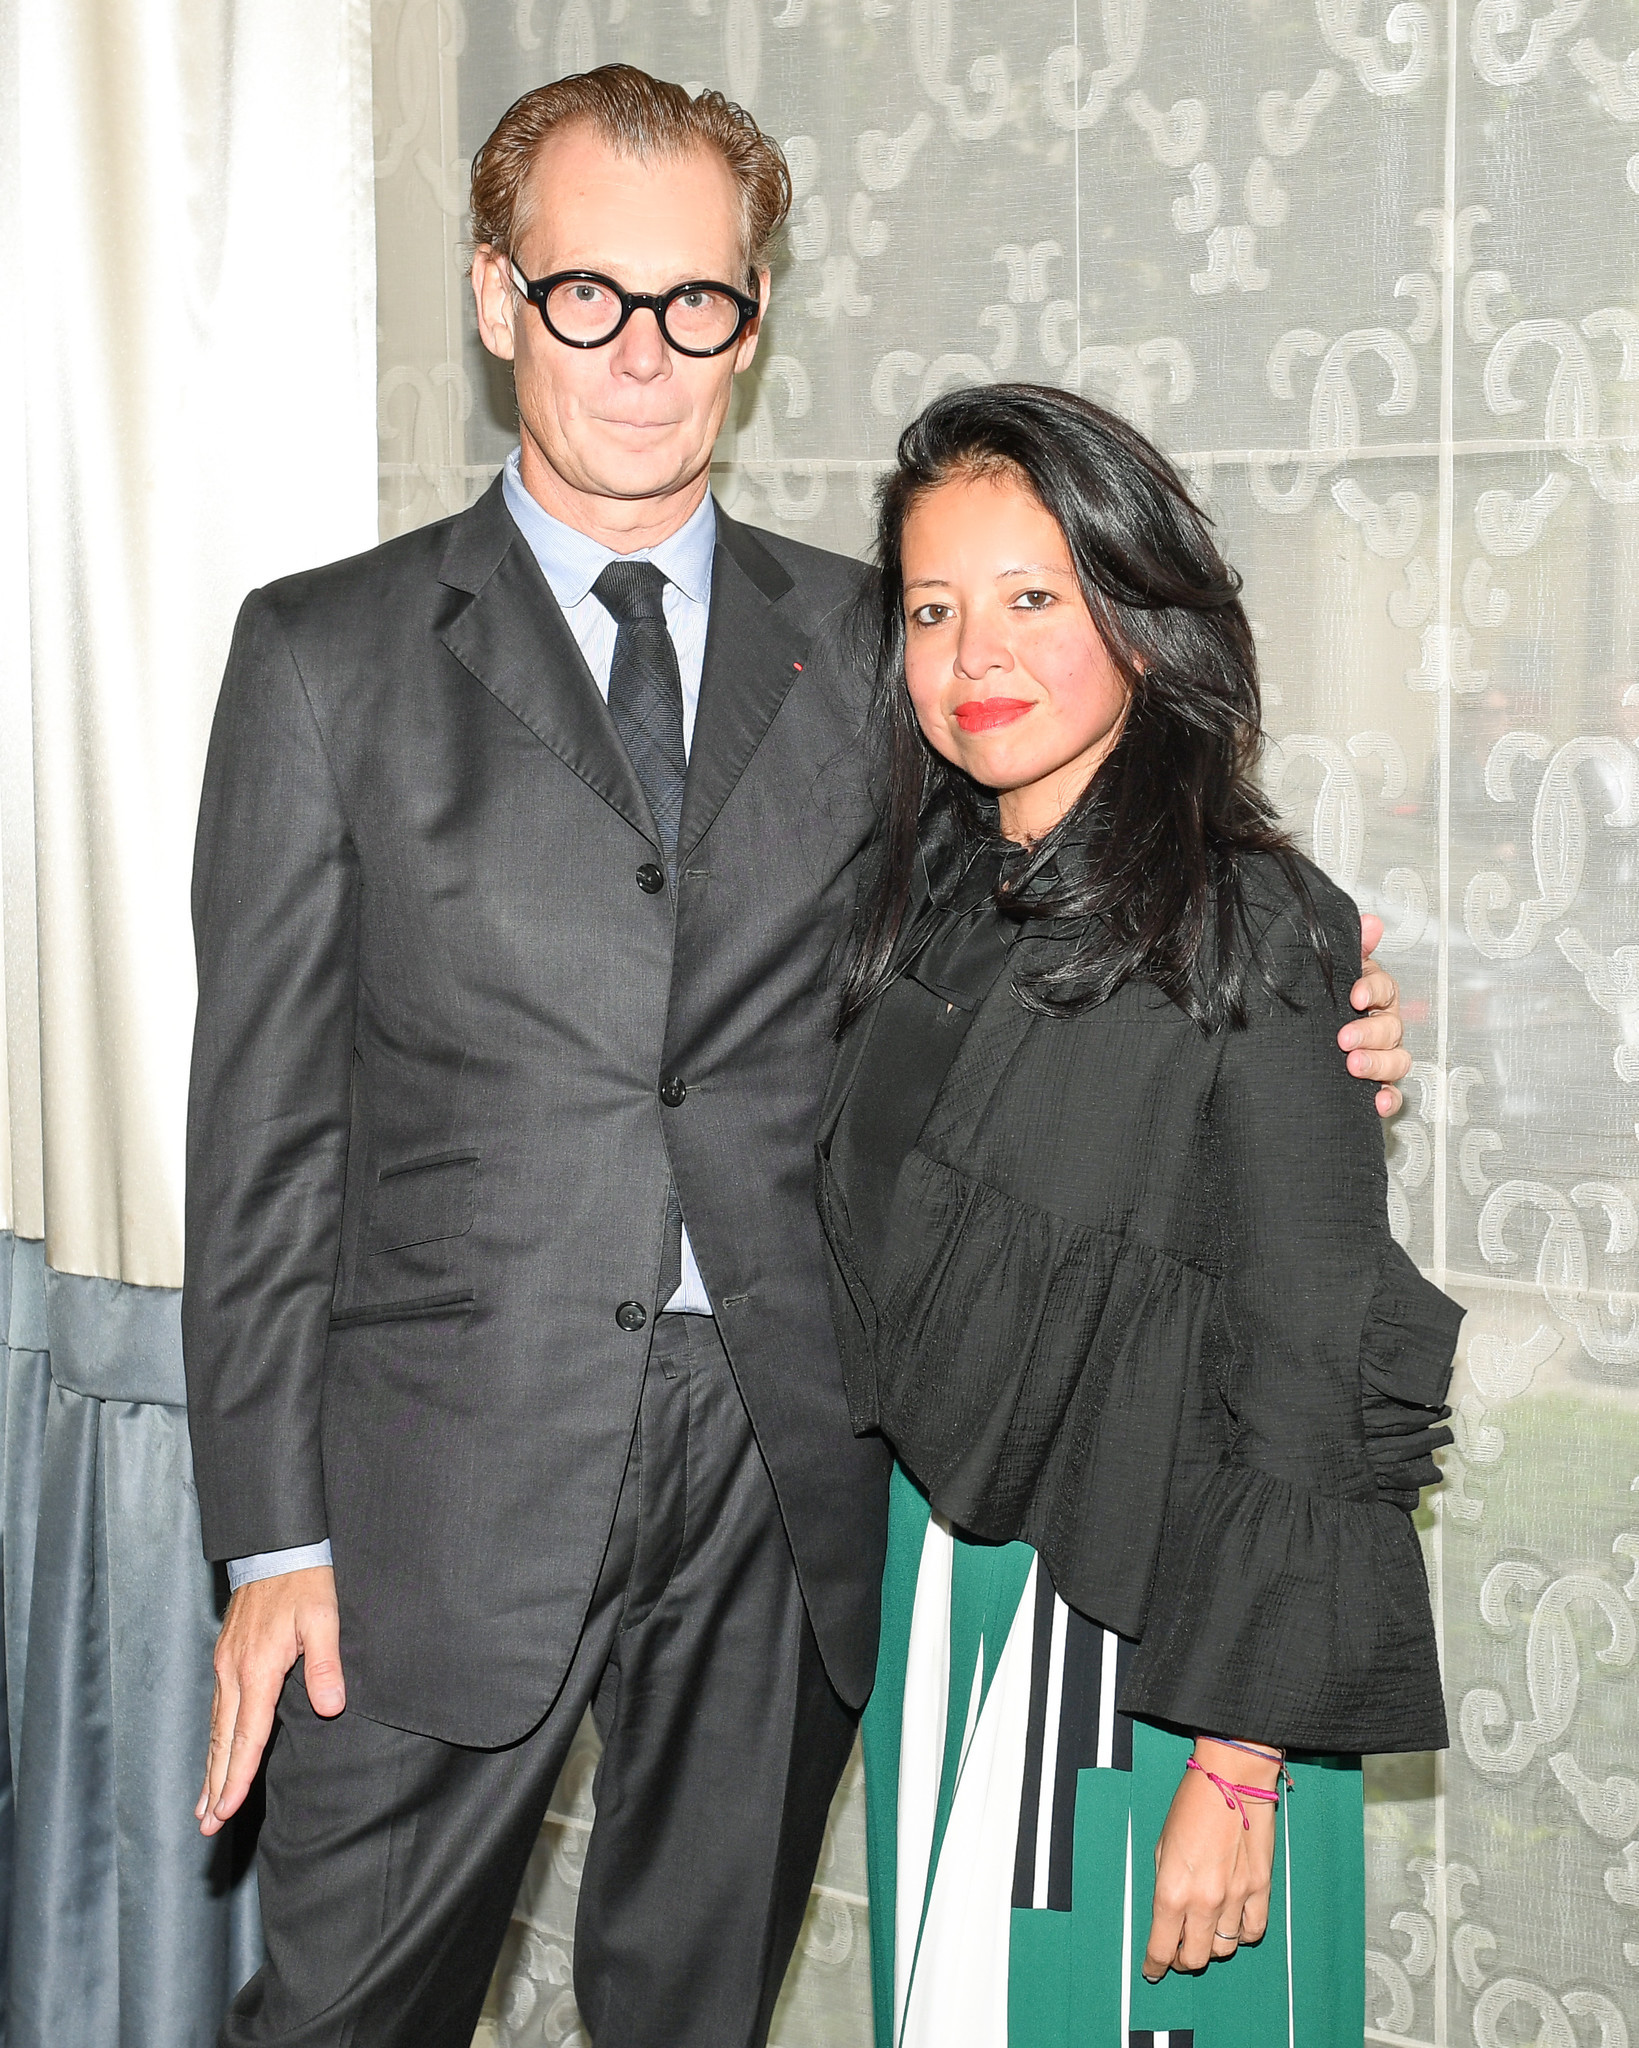 MOCA director Philippe Vergne and his wife, Sylvia Chivaratanond, at the MOCA luncheon on Nov. 1 at the Beverly Wilshire Hotel in Beverly Hills.